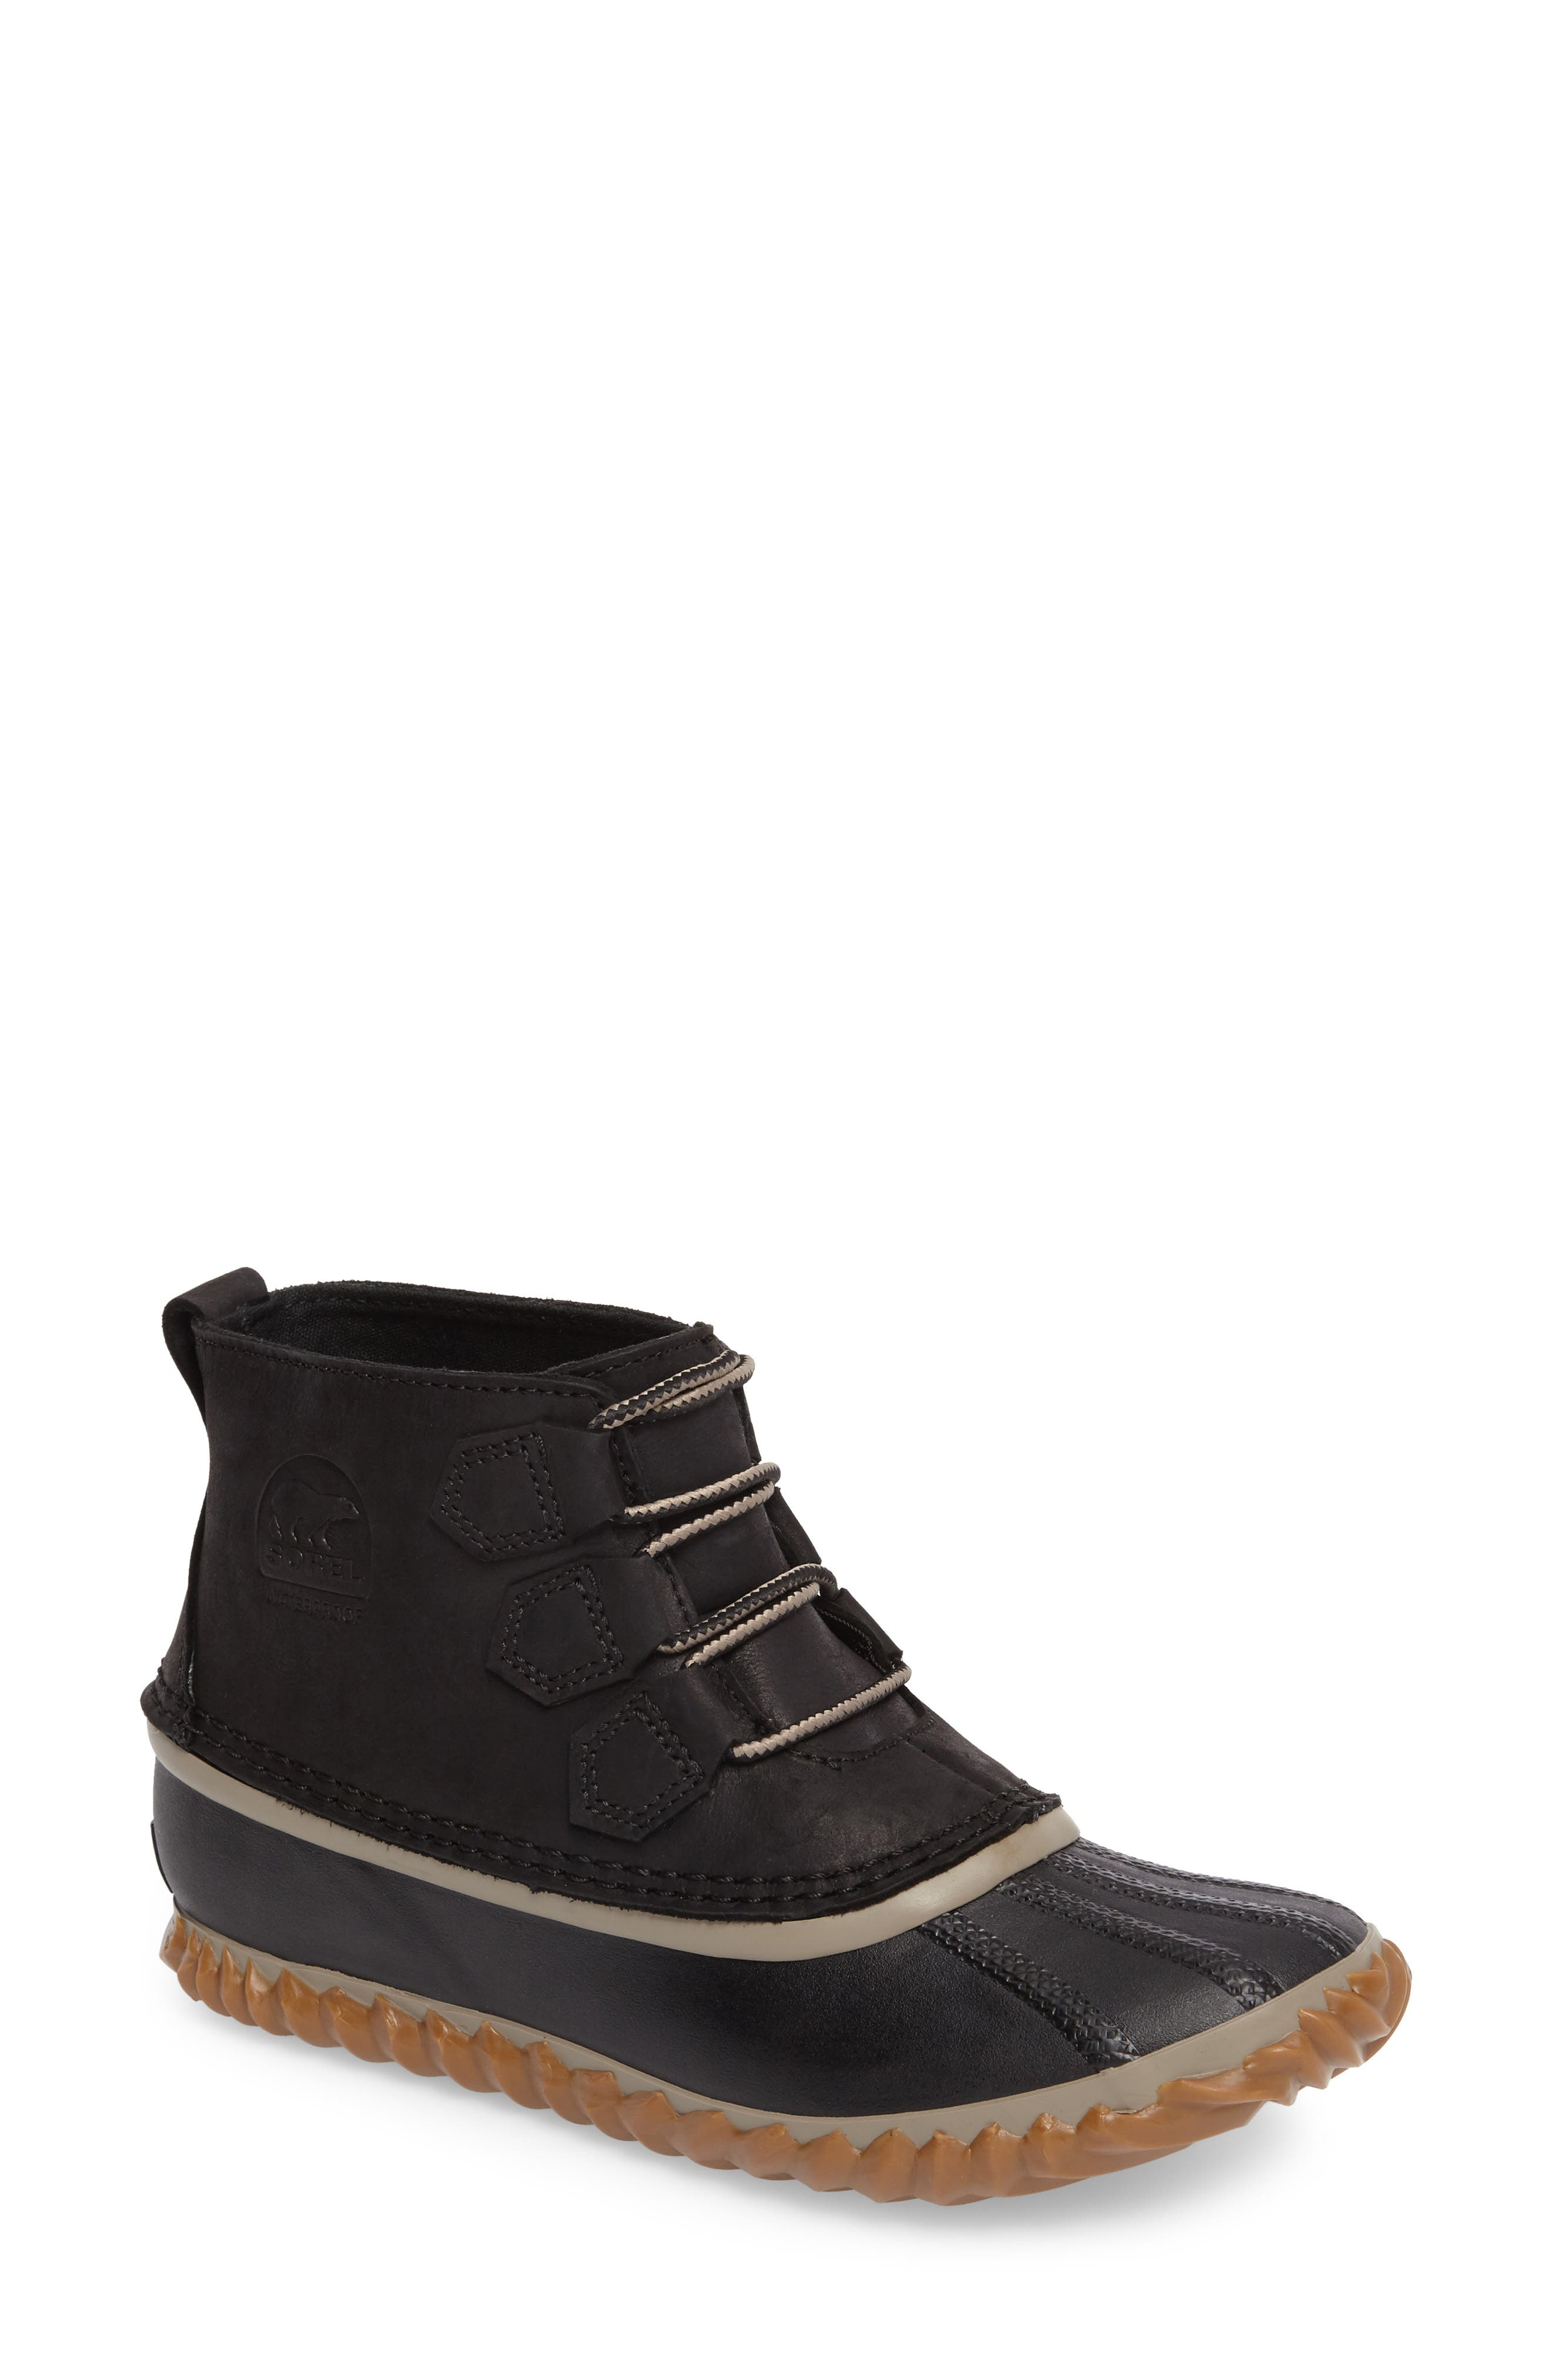 Main Image - SOREL 'Out N About' Leather Boot (Women)